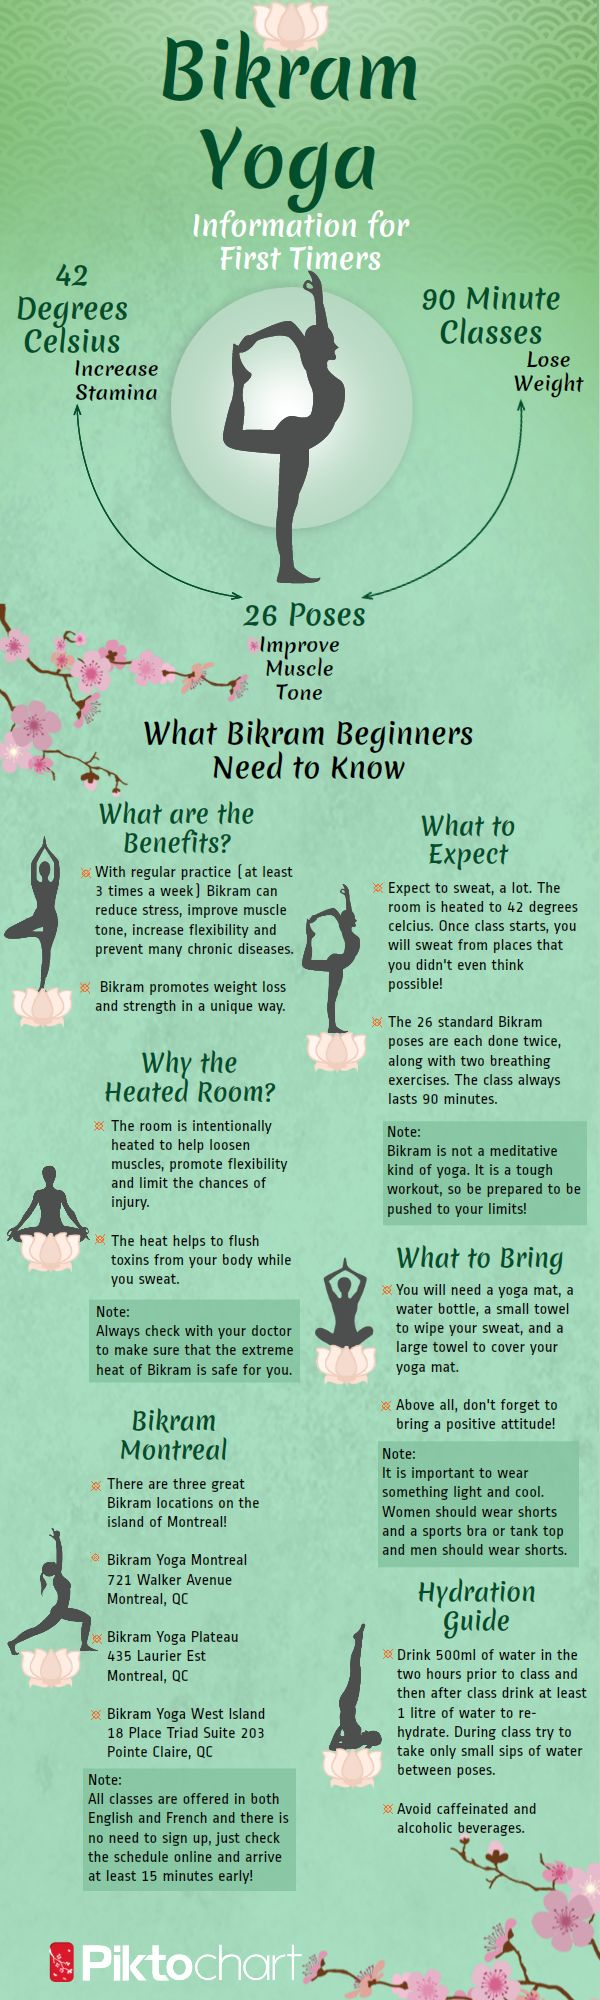 What you need to know about Bikram. I've been practicing Bikram for 7 years, never have found another practice that is so transformative on all levels - body, mind and spirit.